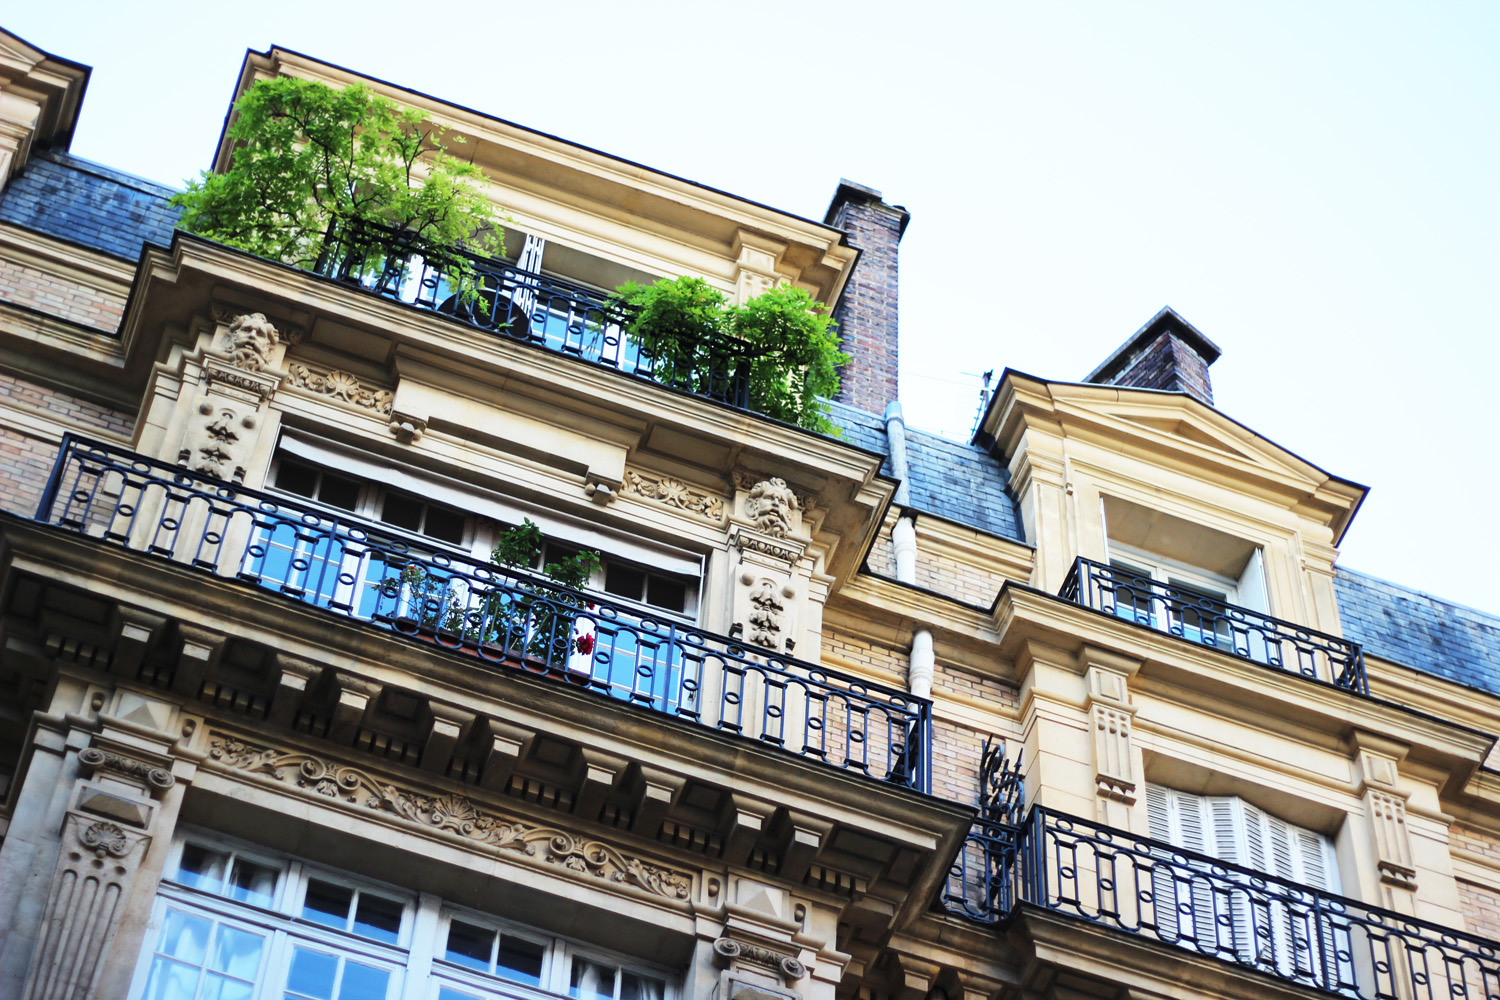 fatimayarie-paris-balcony-beautiful-housefront-france-img_1072